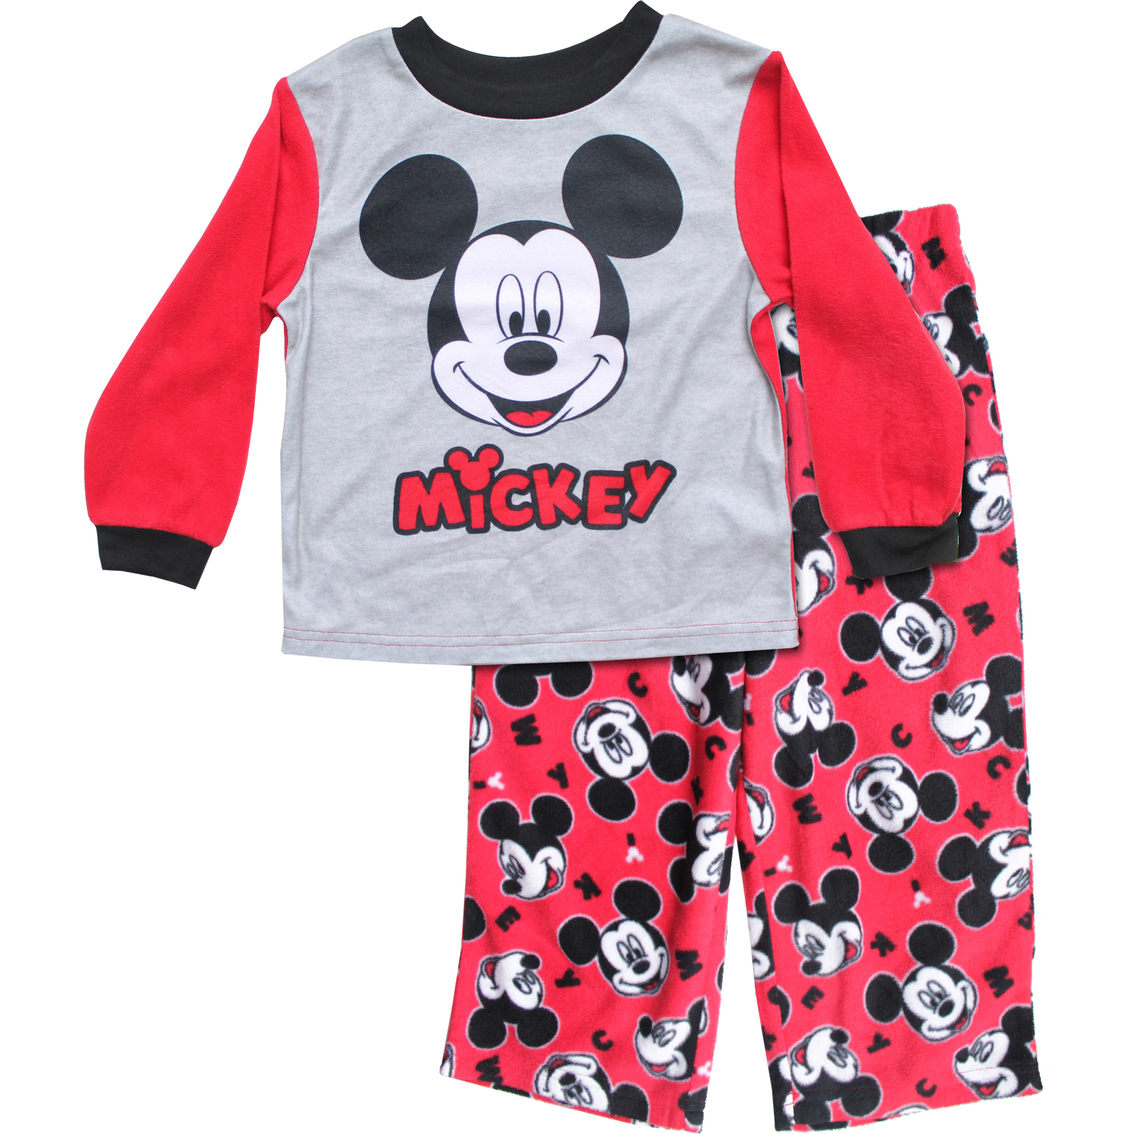 2T Toddler Boy/'s Pajamas Mickey Mouse 2-Piece Set Shirt and Shorts Cool Moves